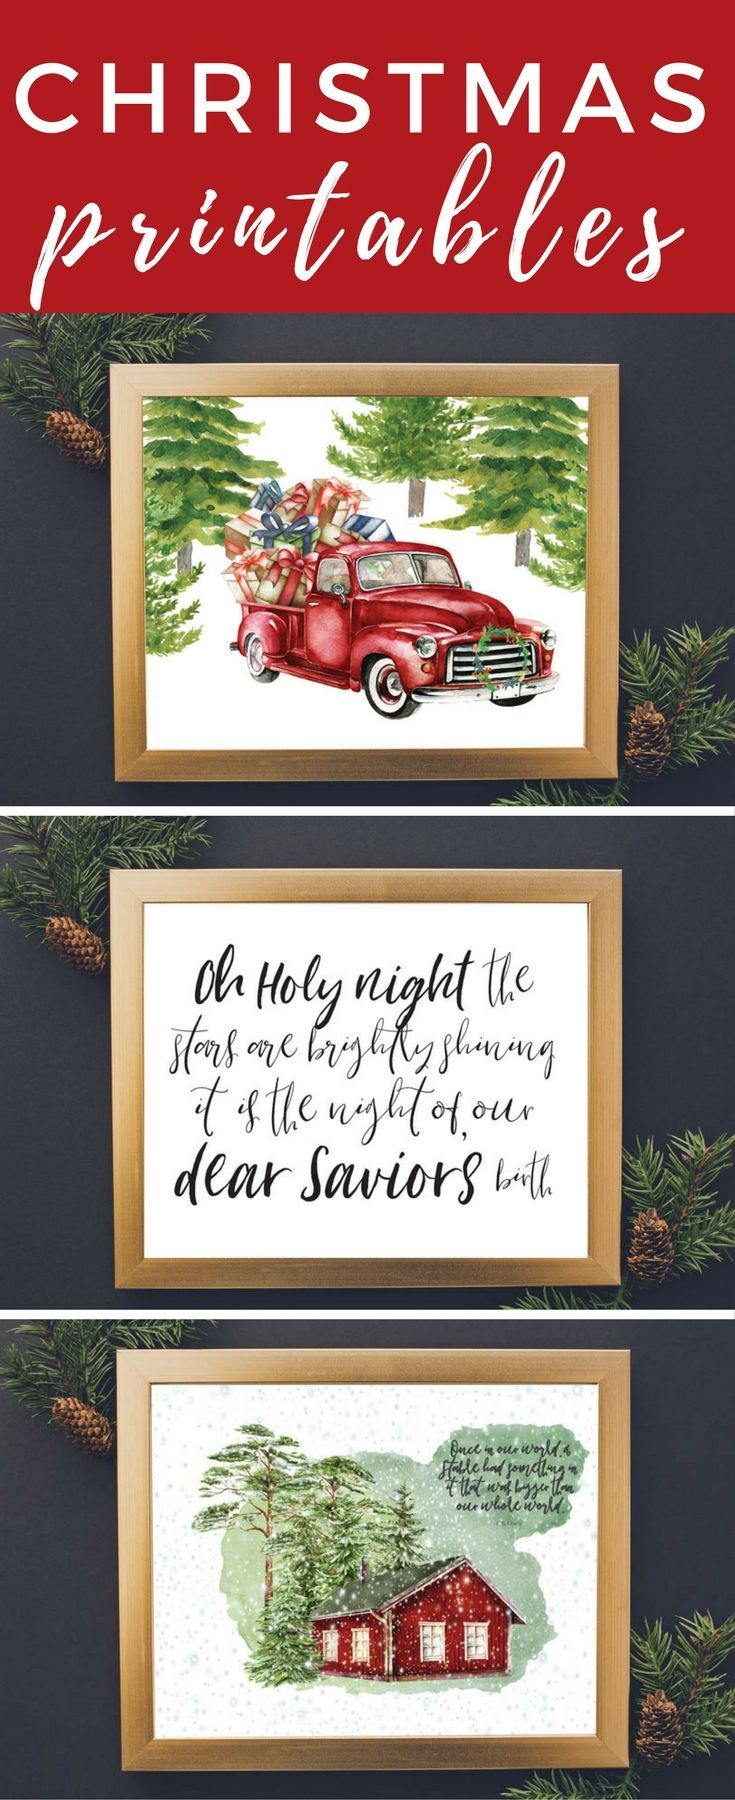 These watercolor Christmas printables are stunning! Such a great way to add affordable Christmas decor to your home.